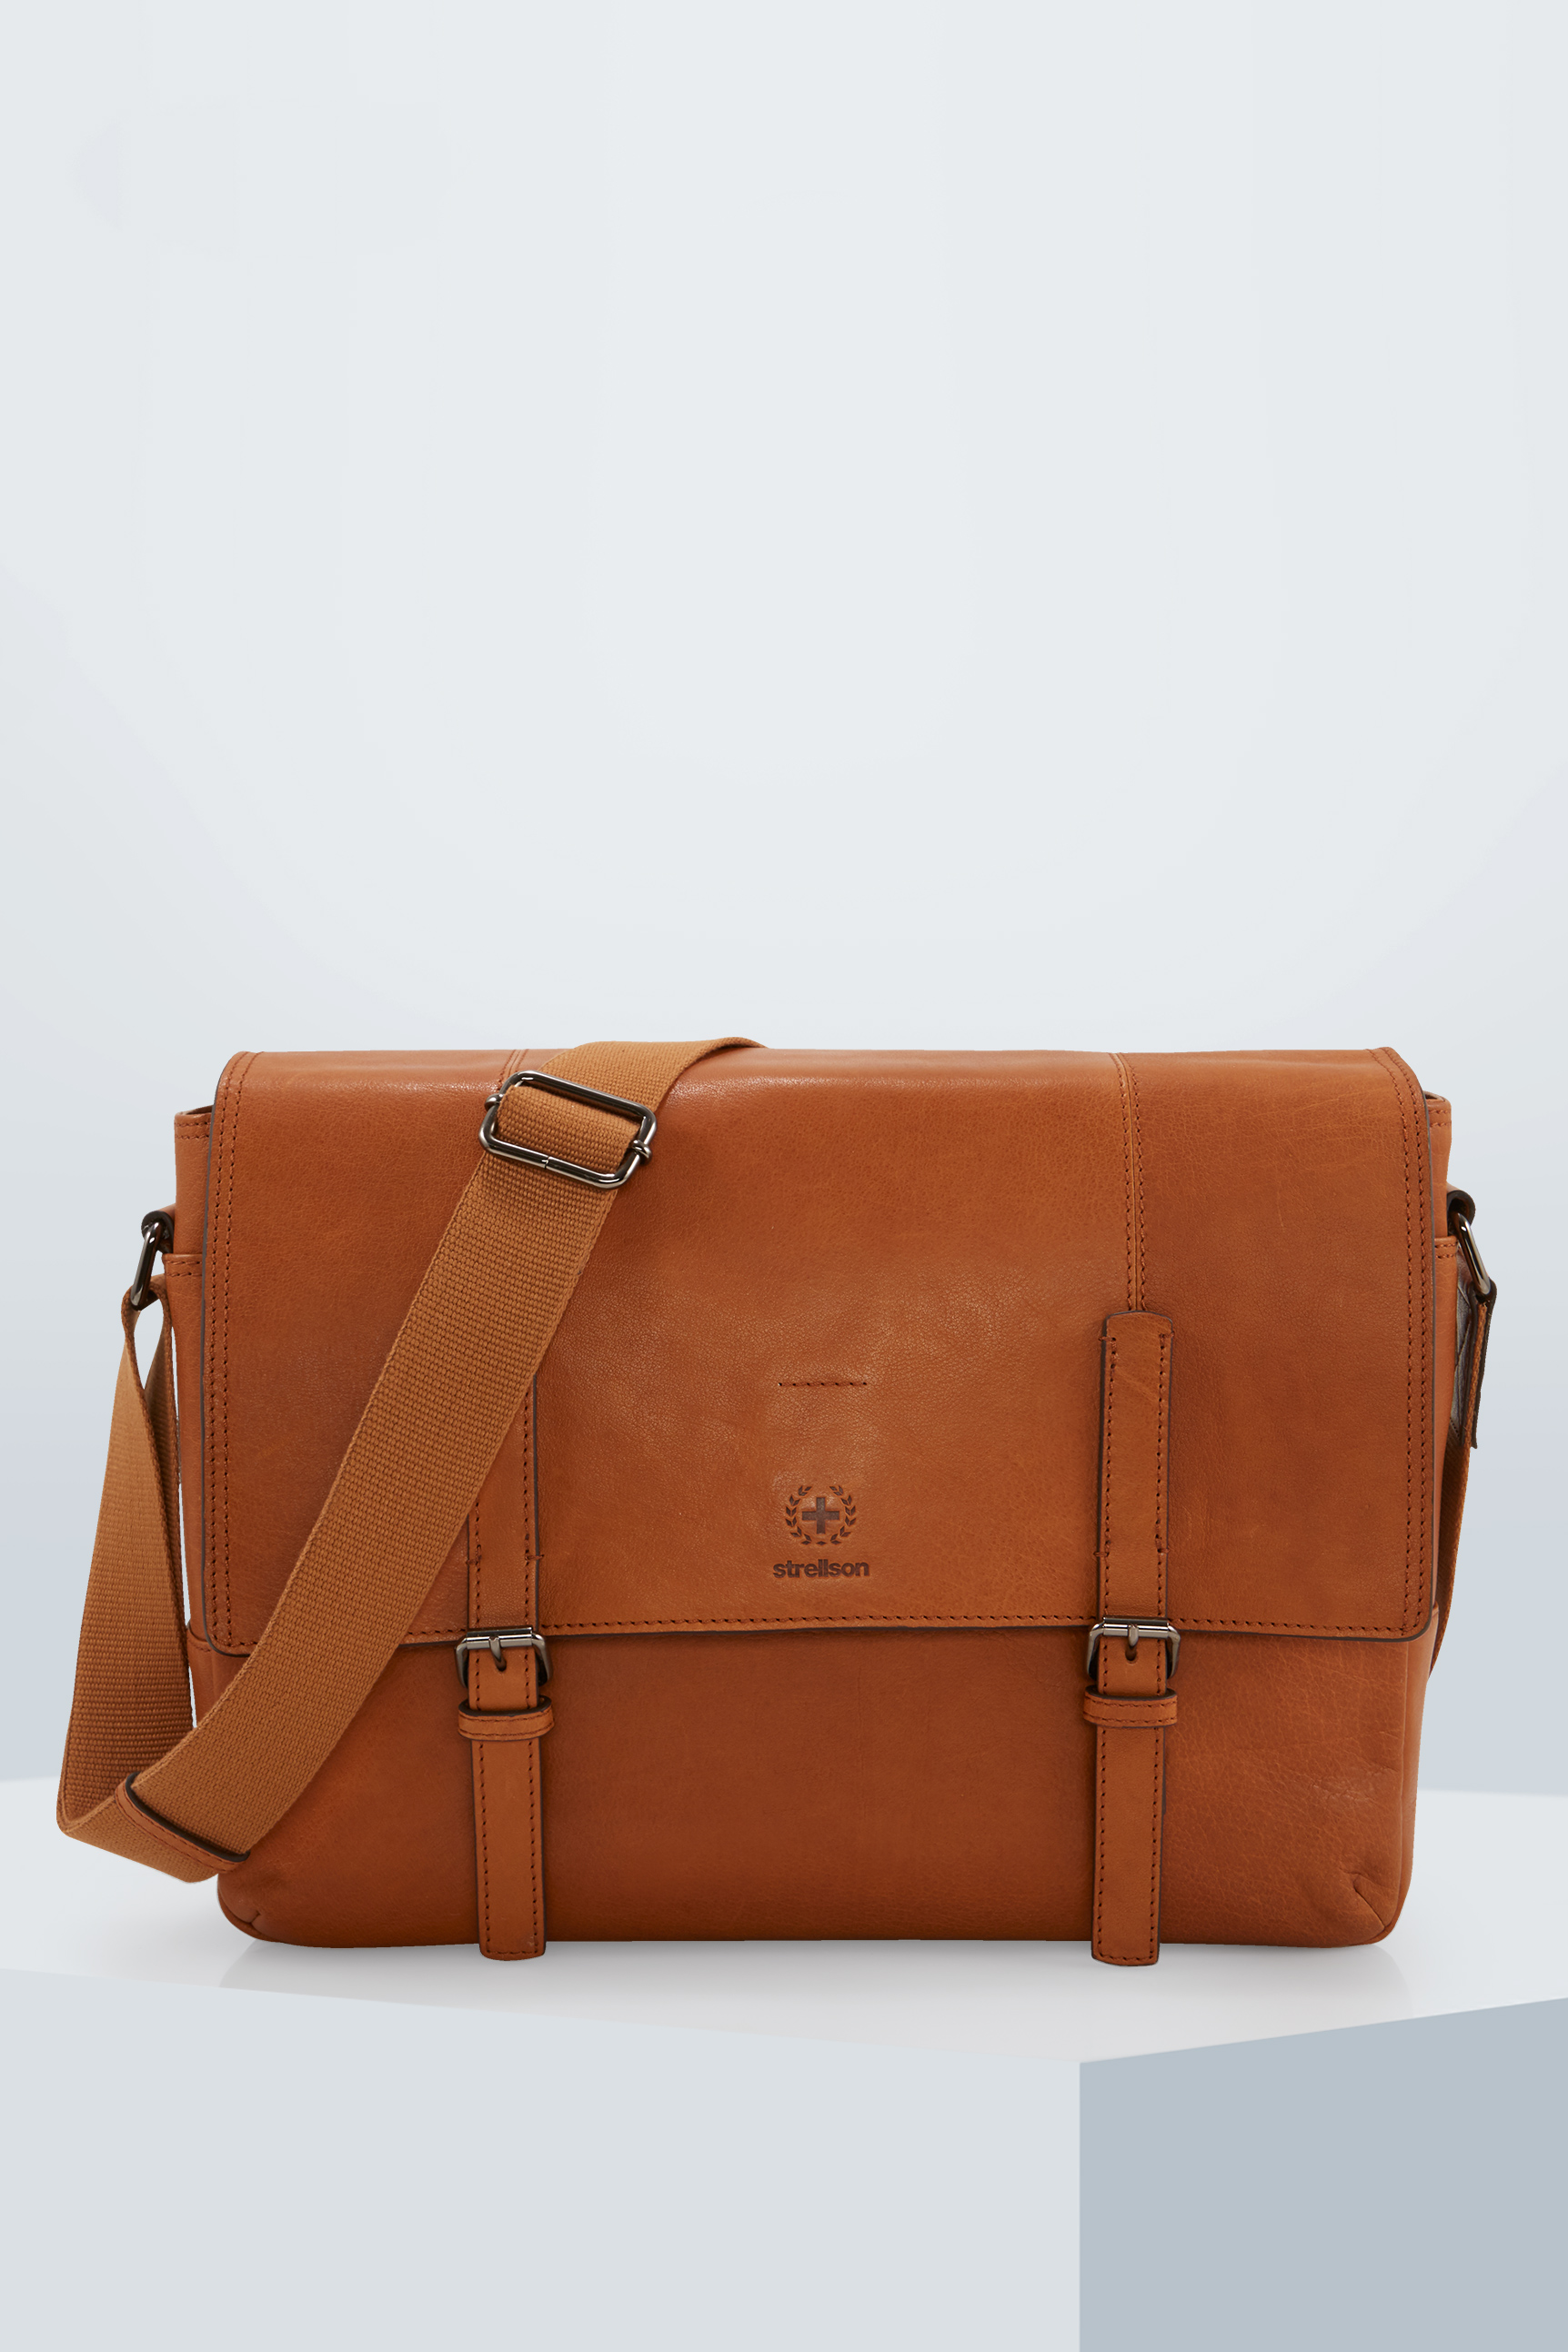 Sac coursier Blackwall, cognac